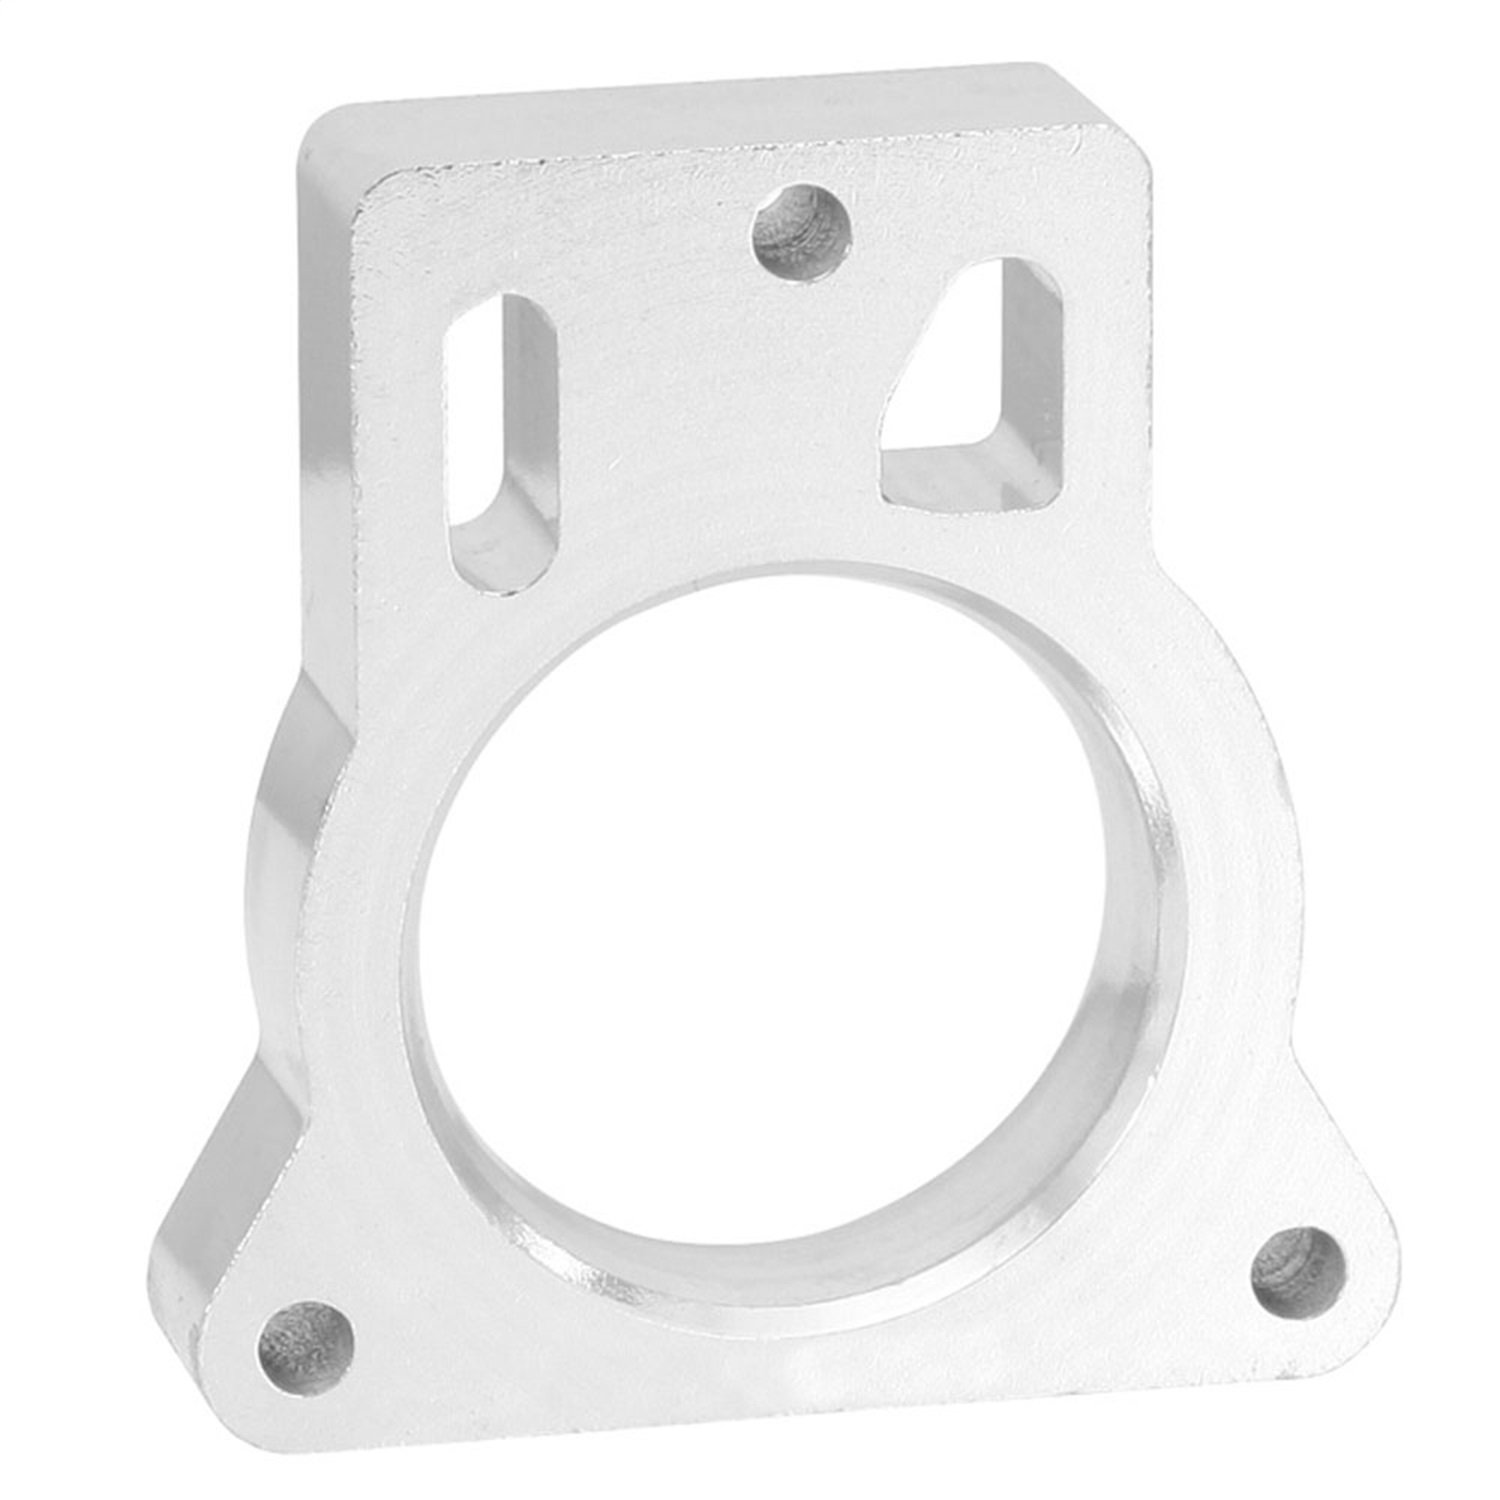 Spectre Performance 11251 Throttle Body Injection Spacer SPE-11251